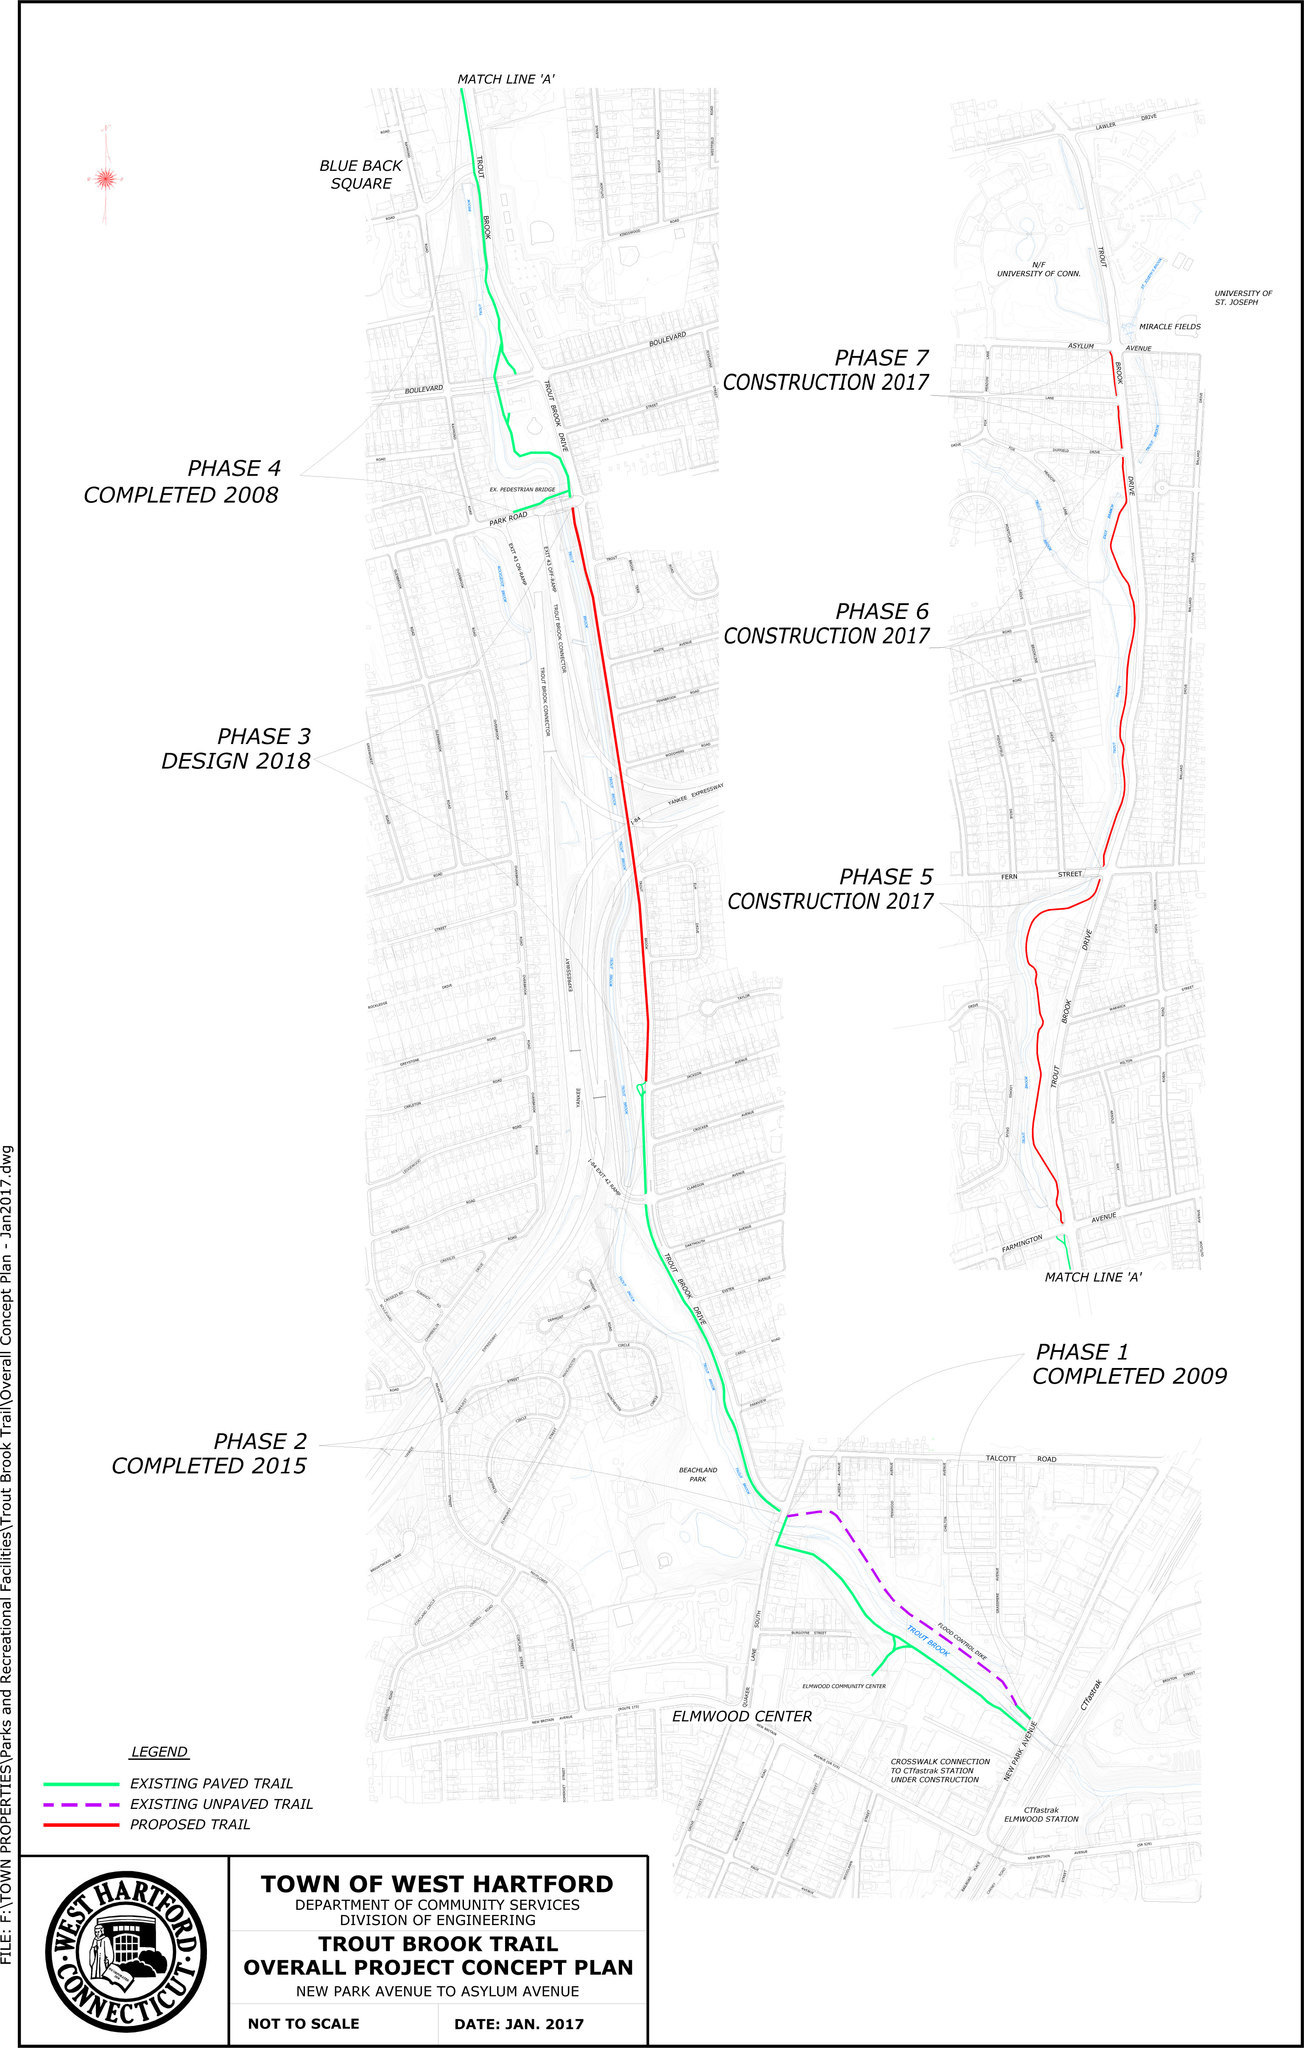 Trout Brook Trail Information Meeting Jan 17 In West Hartford